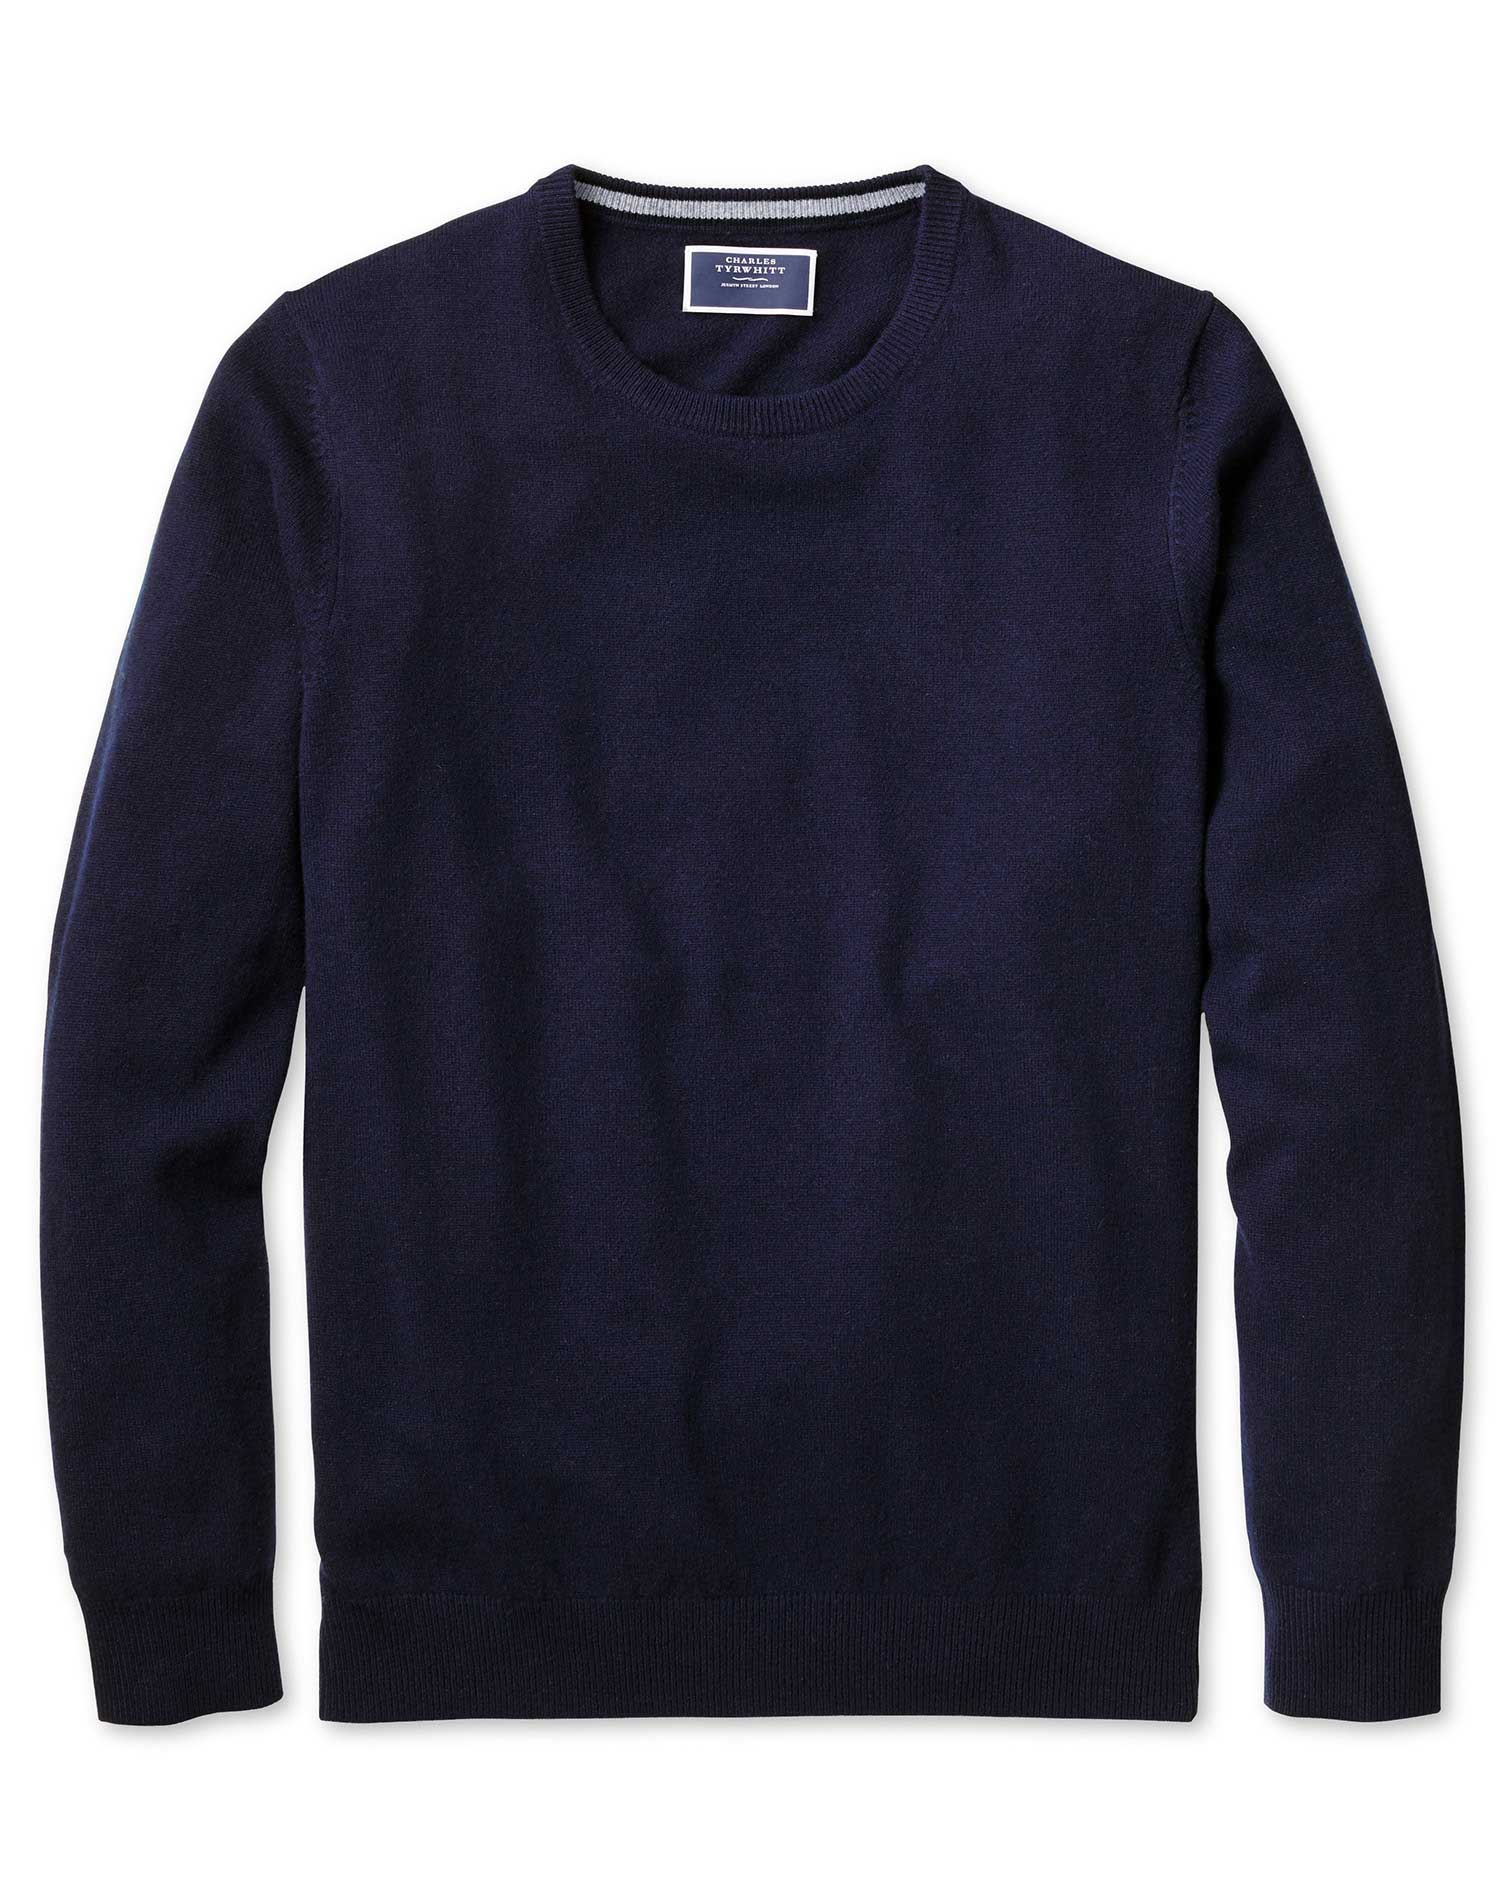 Navy Crew Neck Cashmere Jumper Size Large by Charles Tyrwhitt